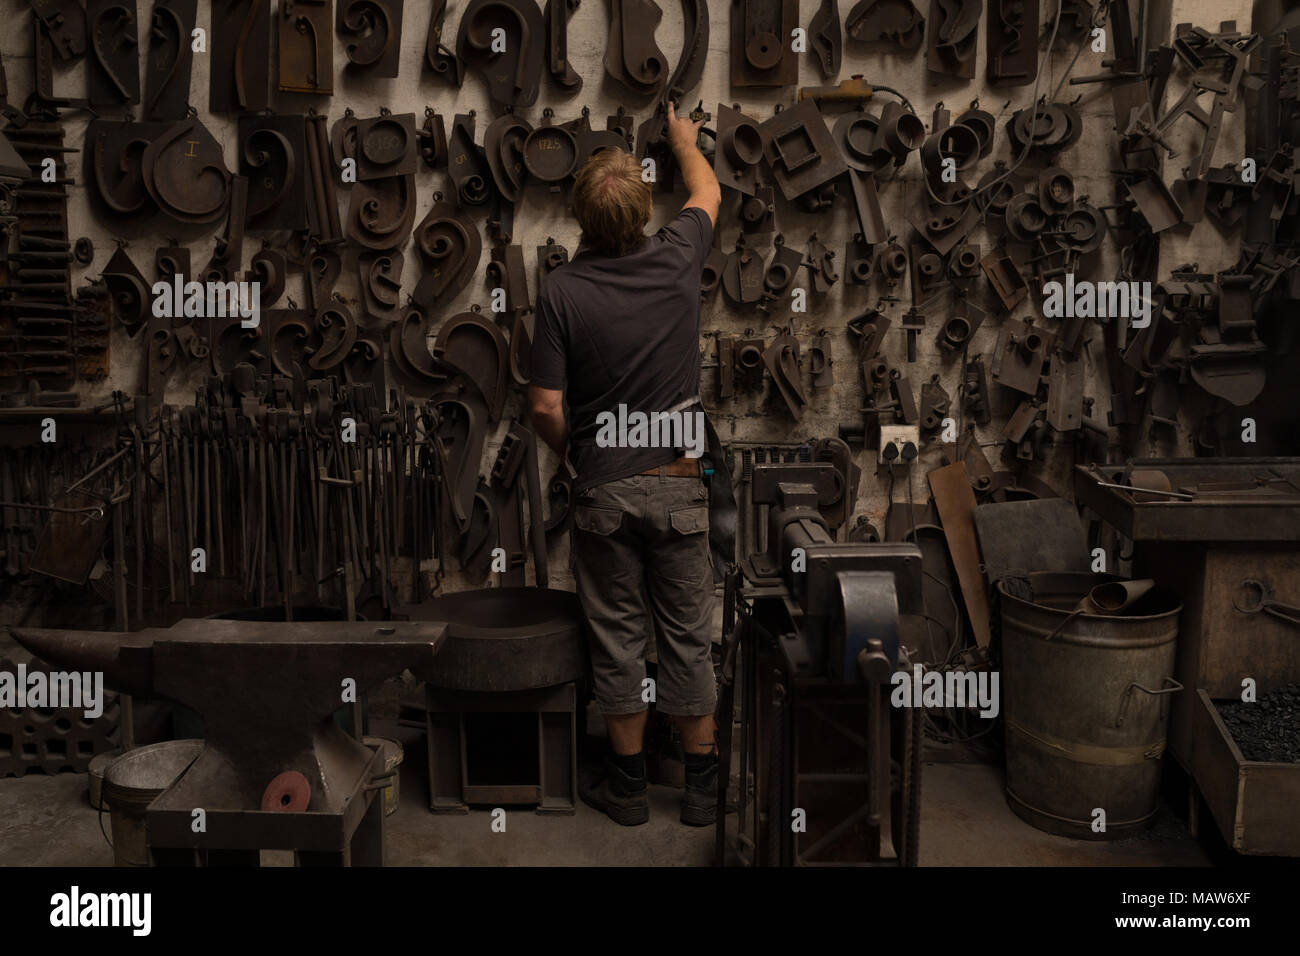 Blacksmith looking at metal equipments - Stock Image